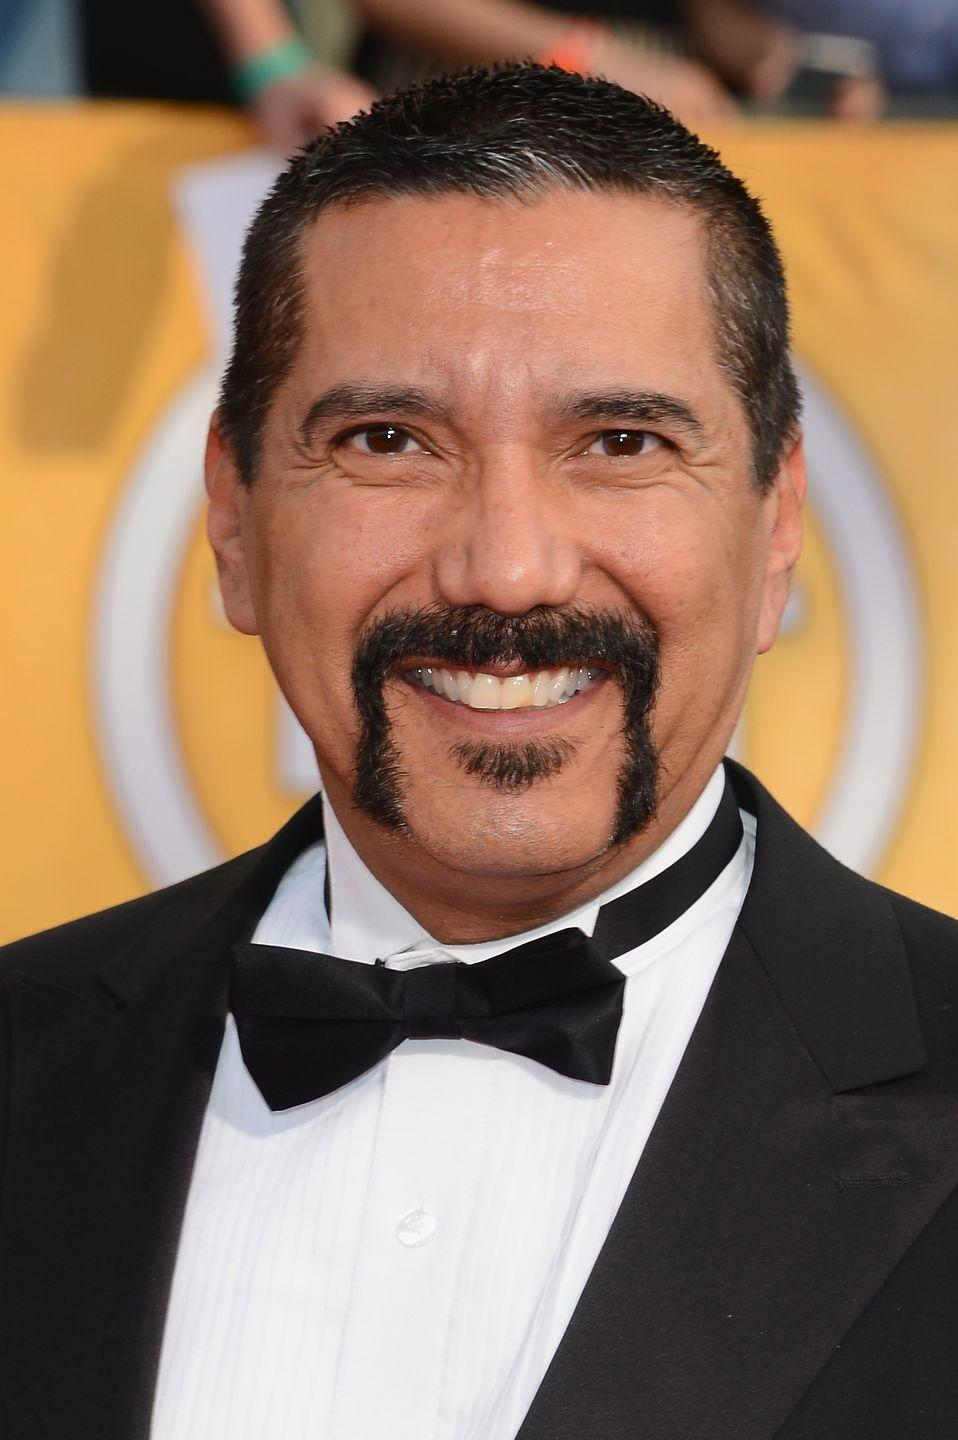 """<p><em>Breaking Bad </em>actor Steven Michael Quezada ran for county commissioner in Albuquerque in July 2015, with the hopes of improving his community. """"I was born and raised here in the district,"""" Quezada told <em><a href=""""https://www.washingtonpost.com/news/morning-mix/wp/2015/07/21/breaking-bad-actor-runs-for-albuquerque-county-commissioner/"""" rel=""""nofollow noopener"""" target=""""_blank"""" data-ylk=""""slk:The Washington Post"""" class=""""link rapid-noclick-resp"""">The Washington Post</a></em>. """"I'm trying to help the kids in the neighborhood where I grew up, to give them a better life."""" Quezada's dream became a reality in 2016 when he won the election against Adrián Pedroza and Robert Chavez.</p>"""